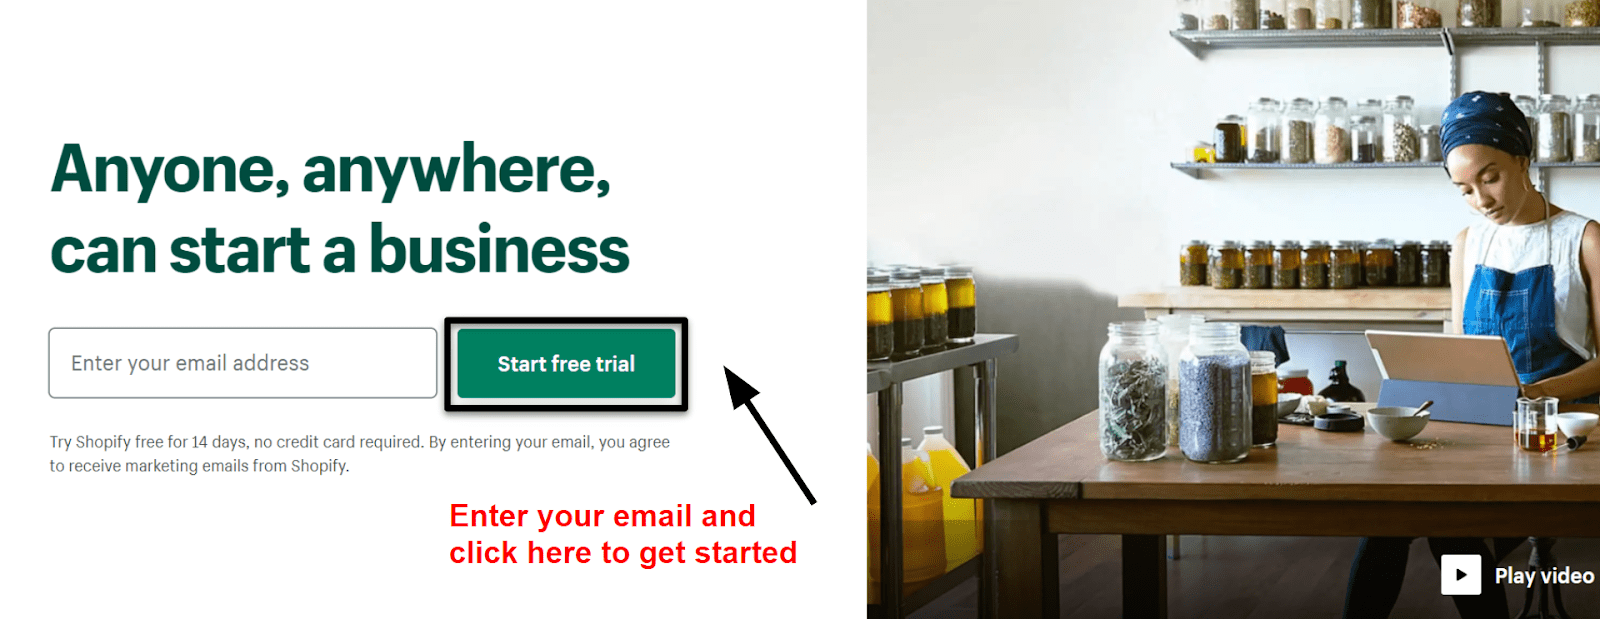 Shopify get started button